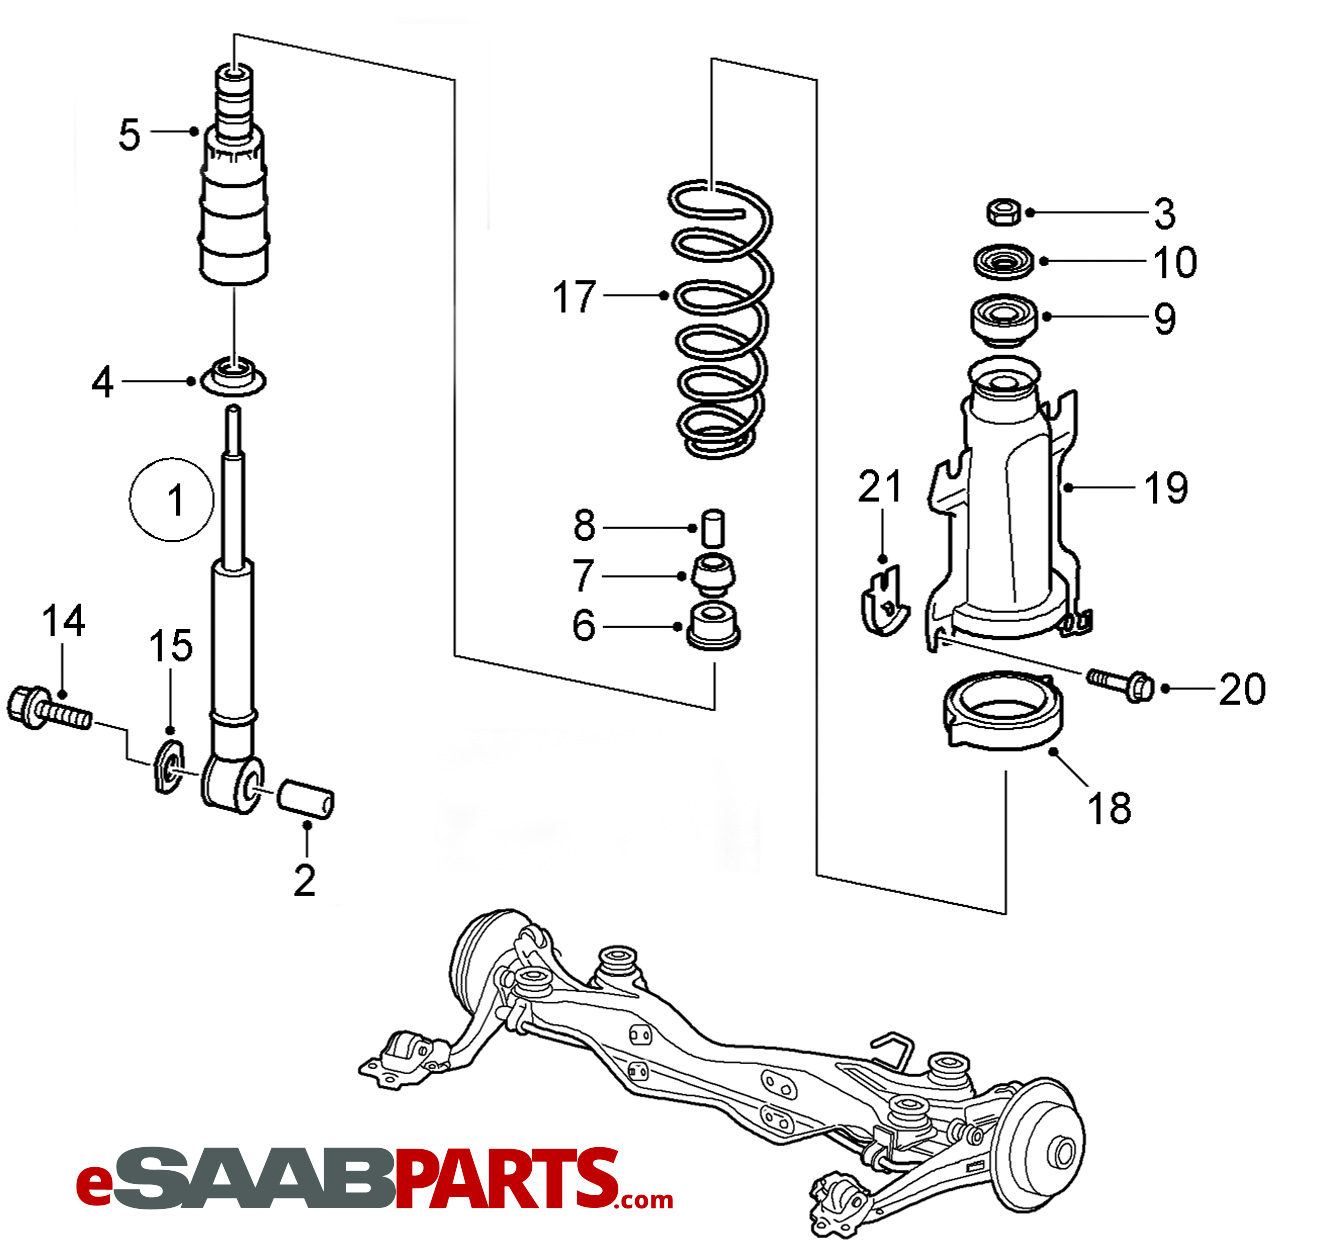 1999 jeep wrangler rear suspension diagram